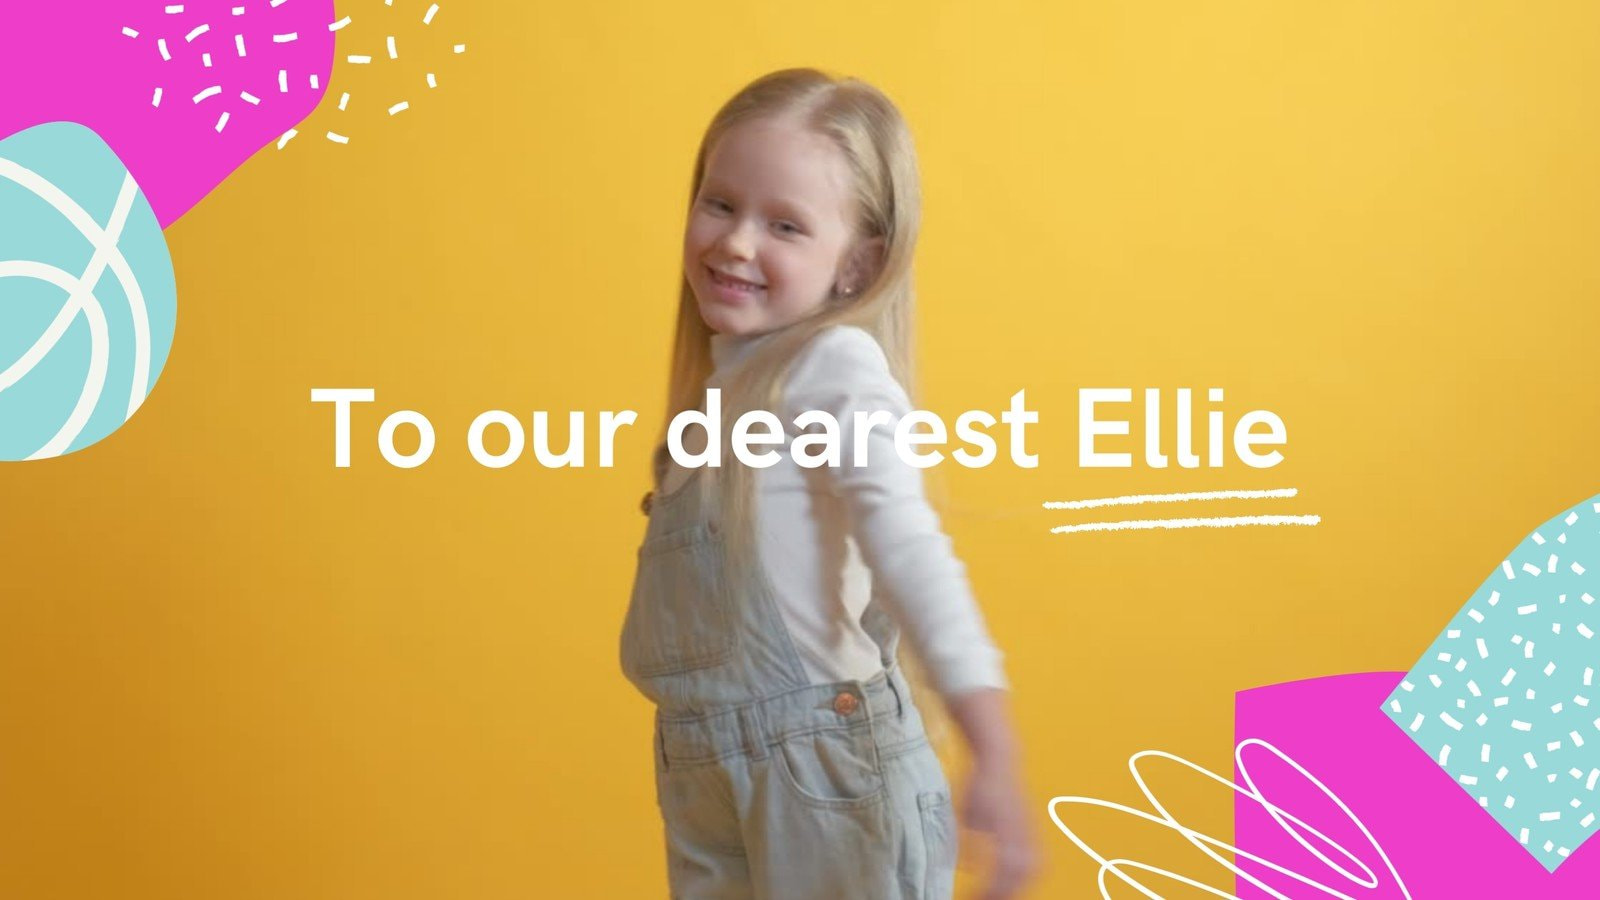 Yellow Pink and Turquoise Girl Shapes Scribbles & Brushes Birthday Greetings Slideshow Video